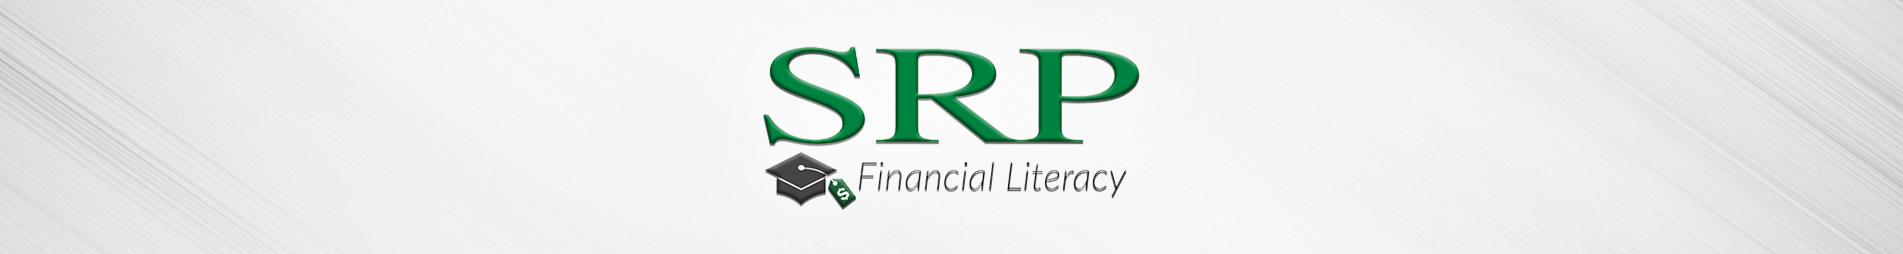 Seminar - SRP FL Interior Banner | Disclaimer - Calendly Seminar